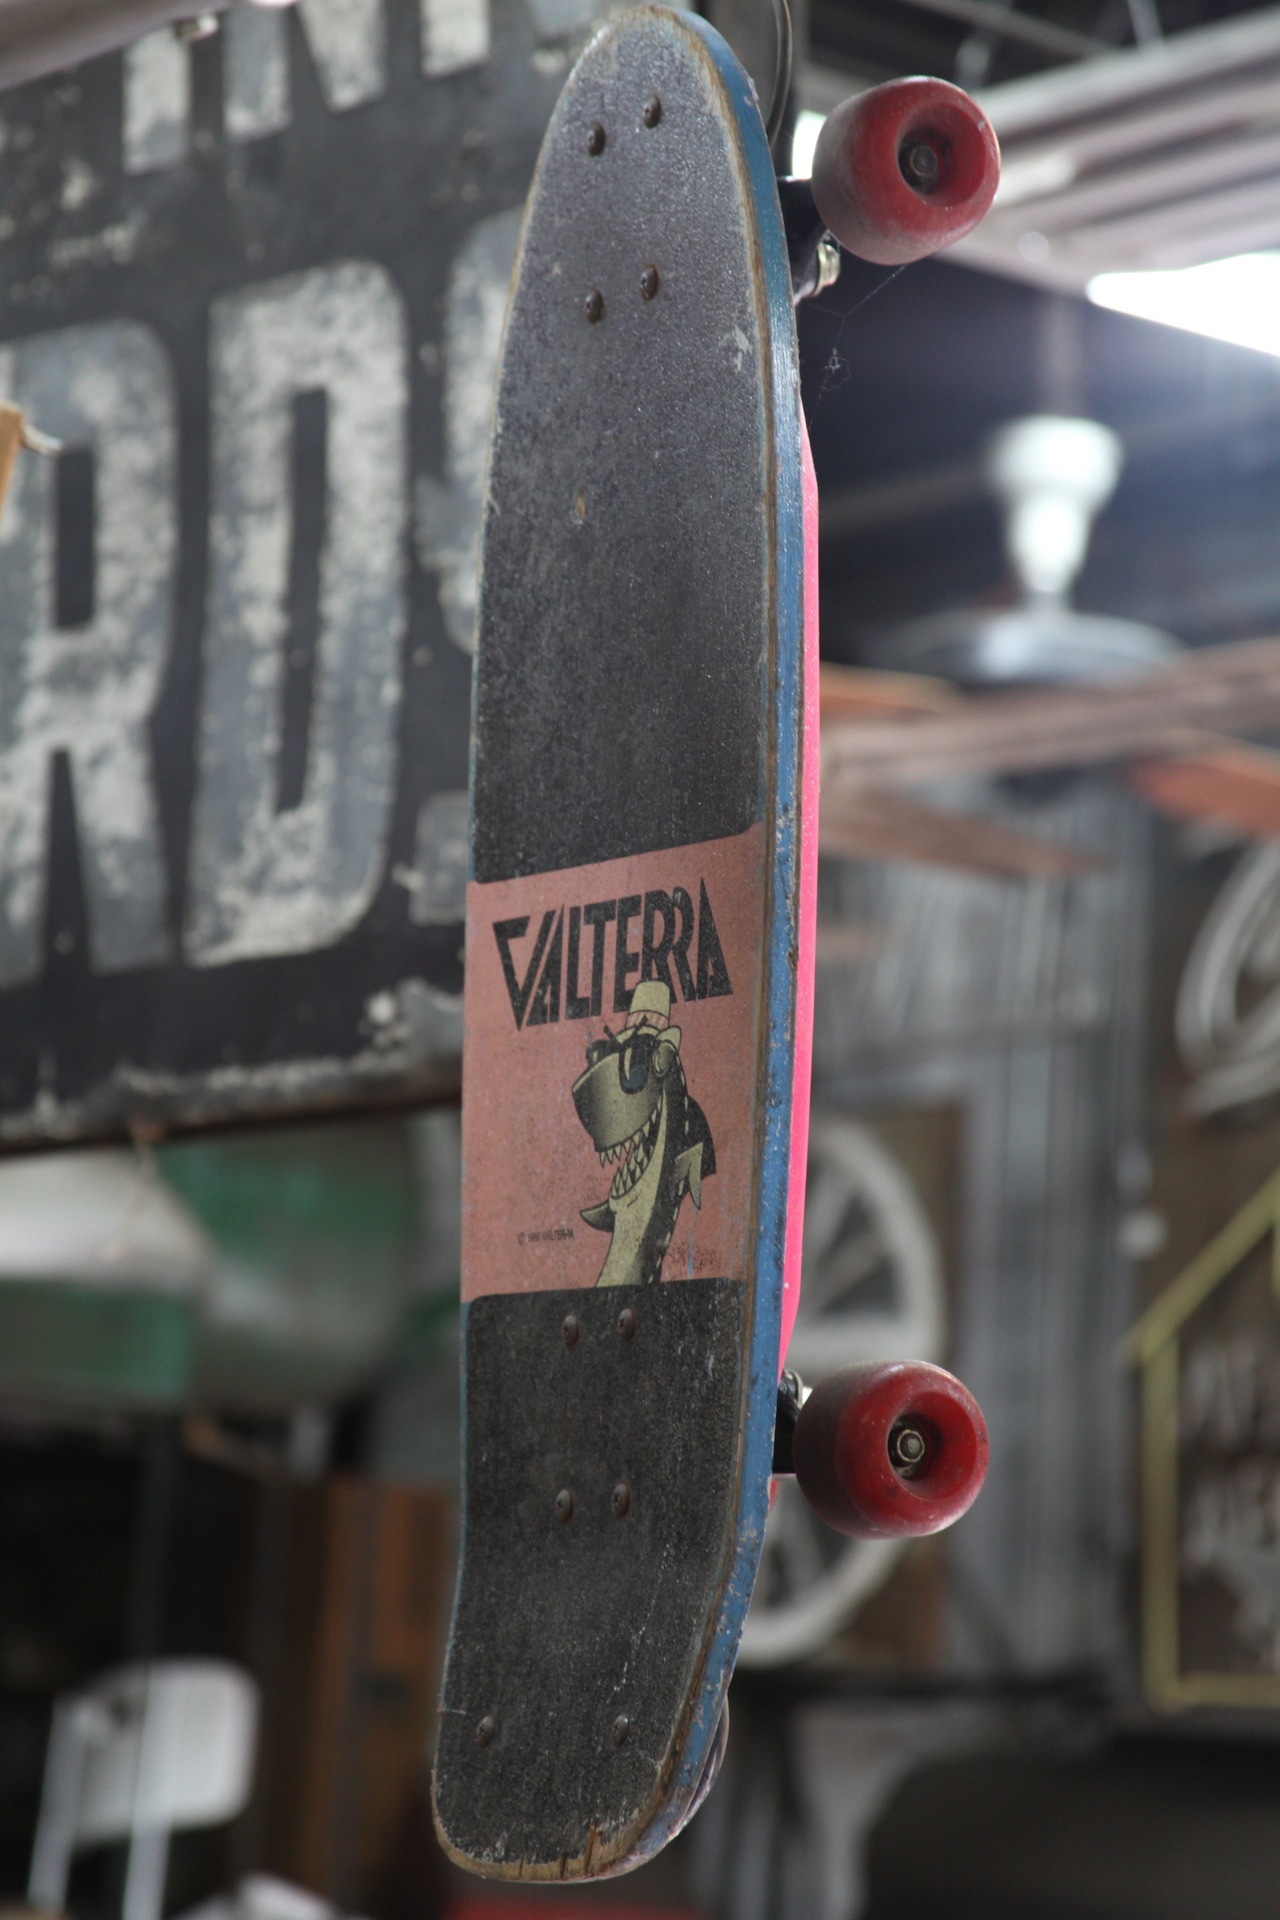 Old Valterra skateboard hanging up in a junk yard.